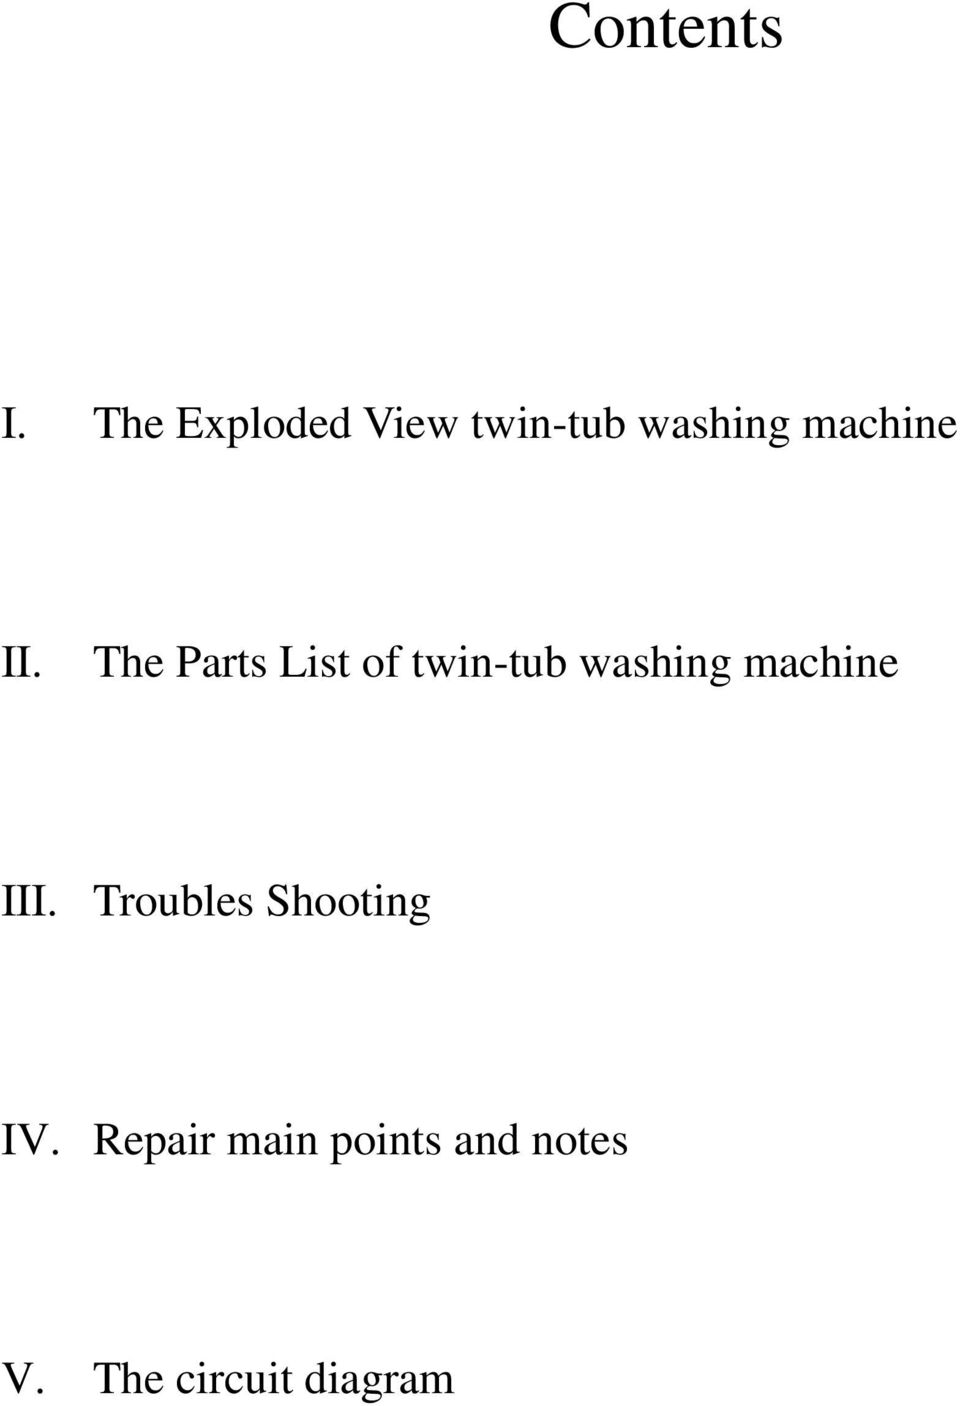 the parts list of twin-tub washing